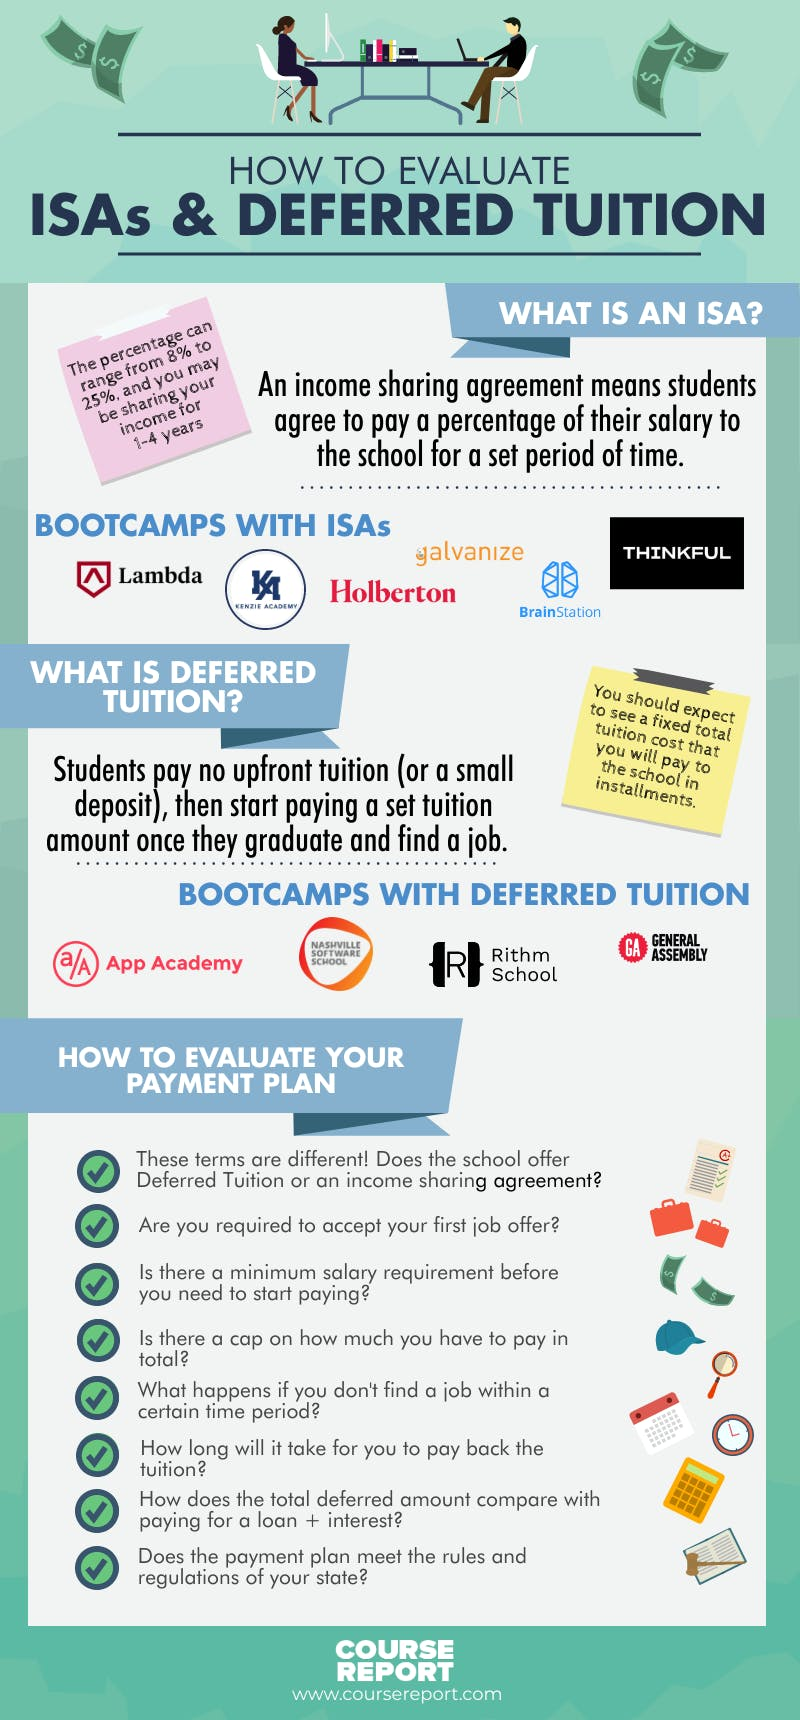 Coding bootcamp isa infographic 2020